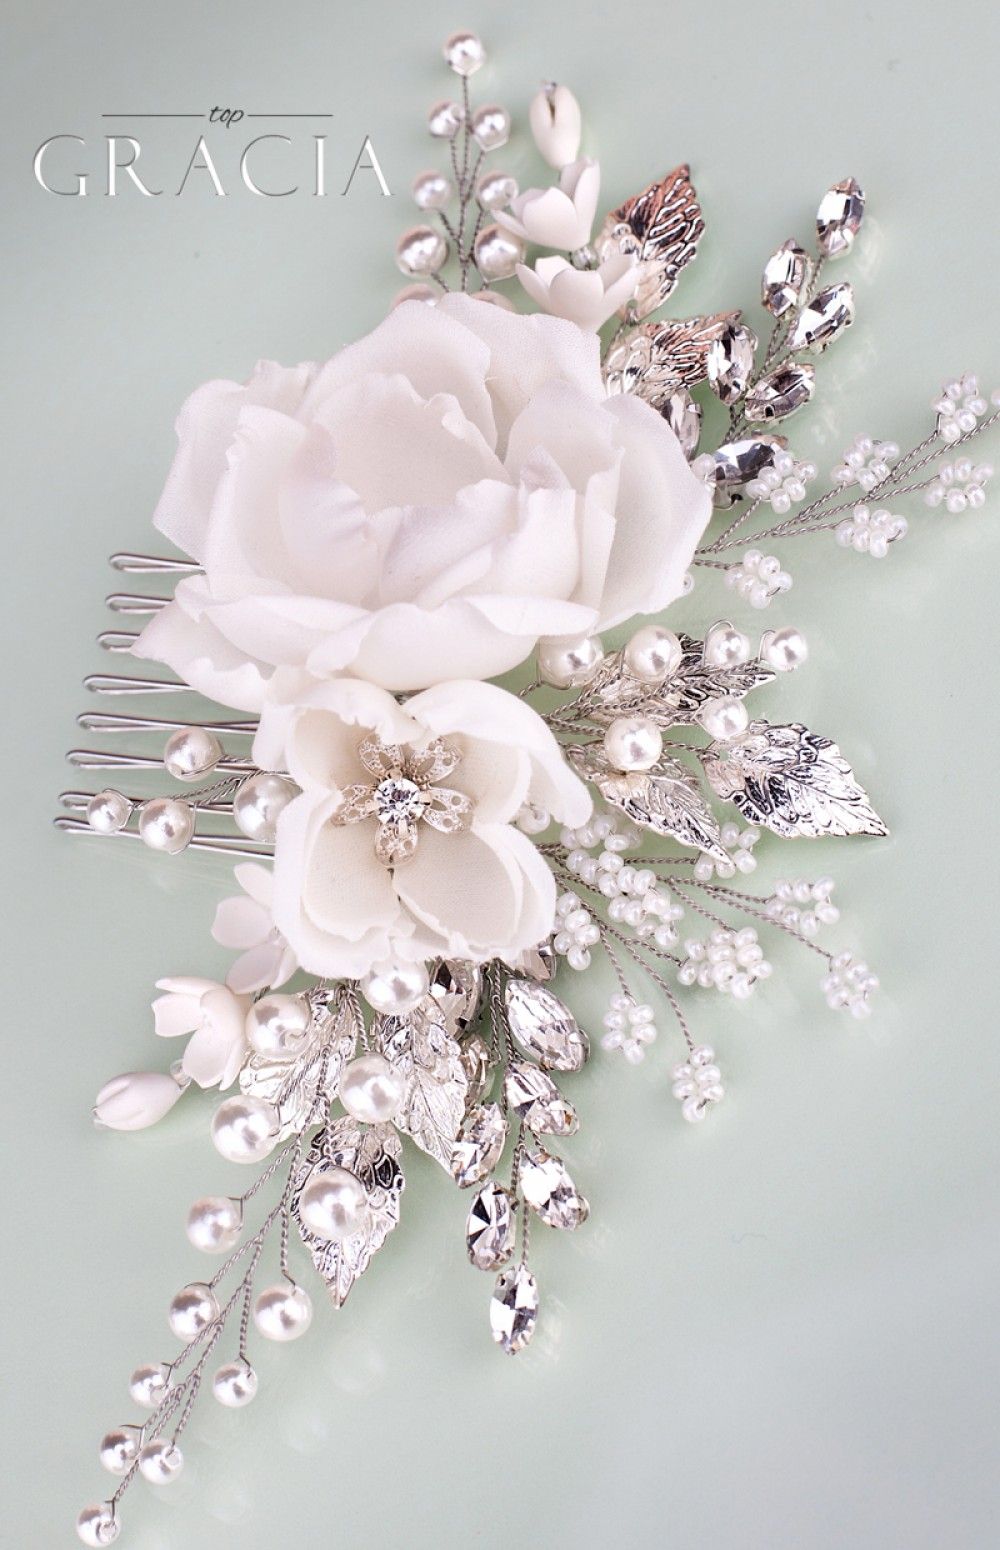 f55130f85483 ROSE Floral Hair Accessories White Bridal Hair Flower Comb With Rhinestones  by TopGracia